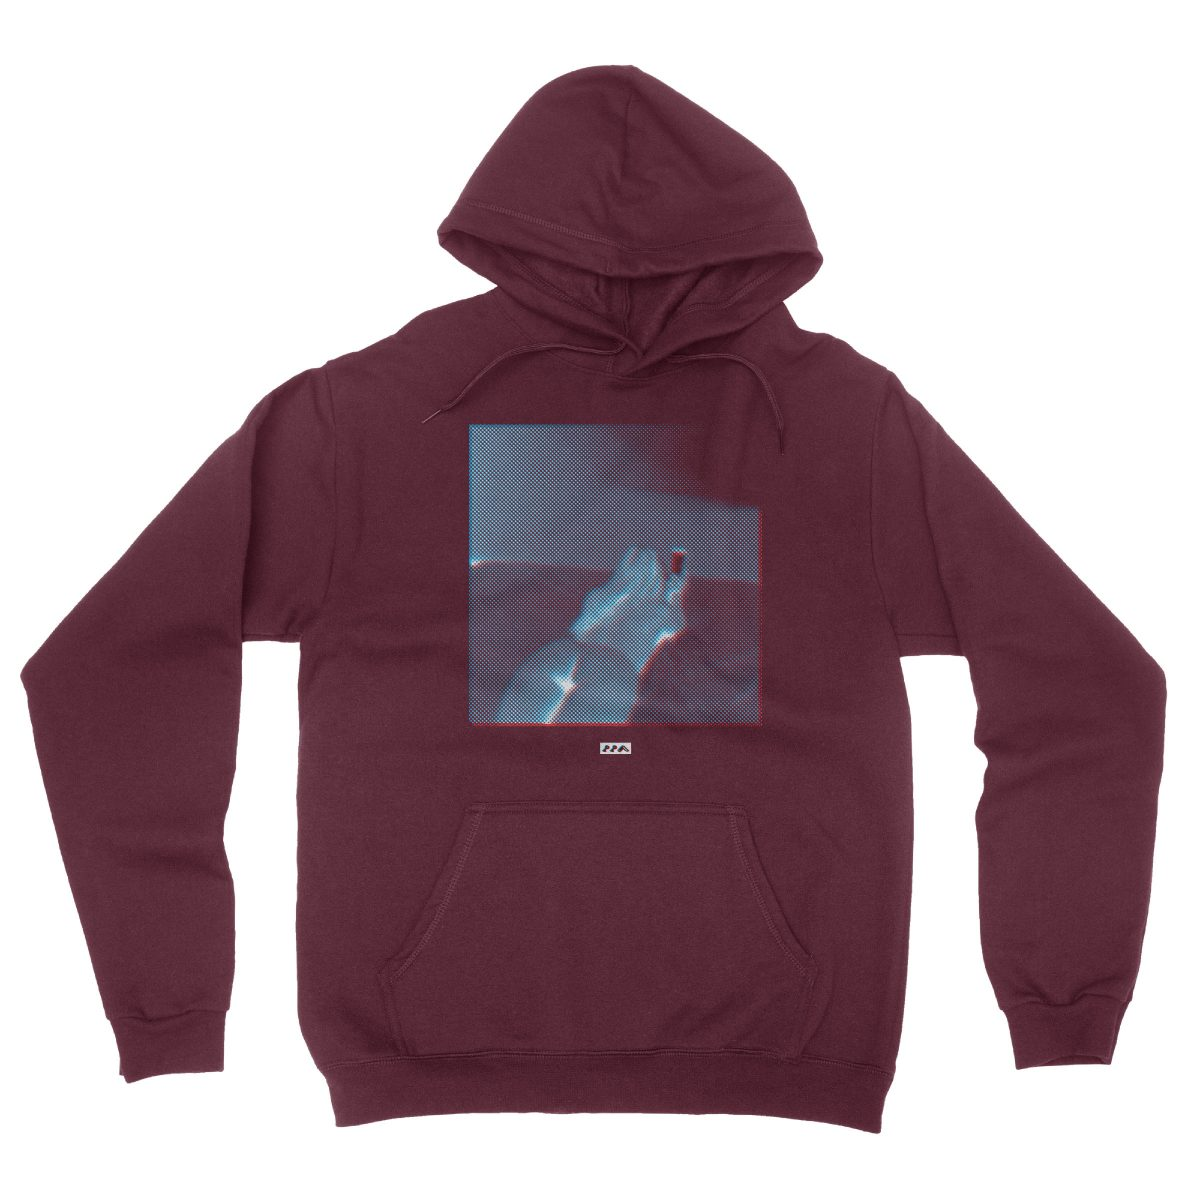 BOOTY CALL sexy girl with big ol booty graphic hoodie in maroon